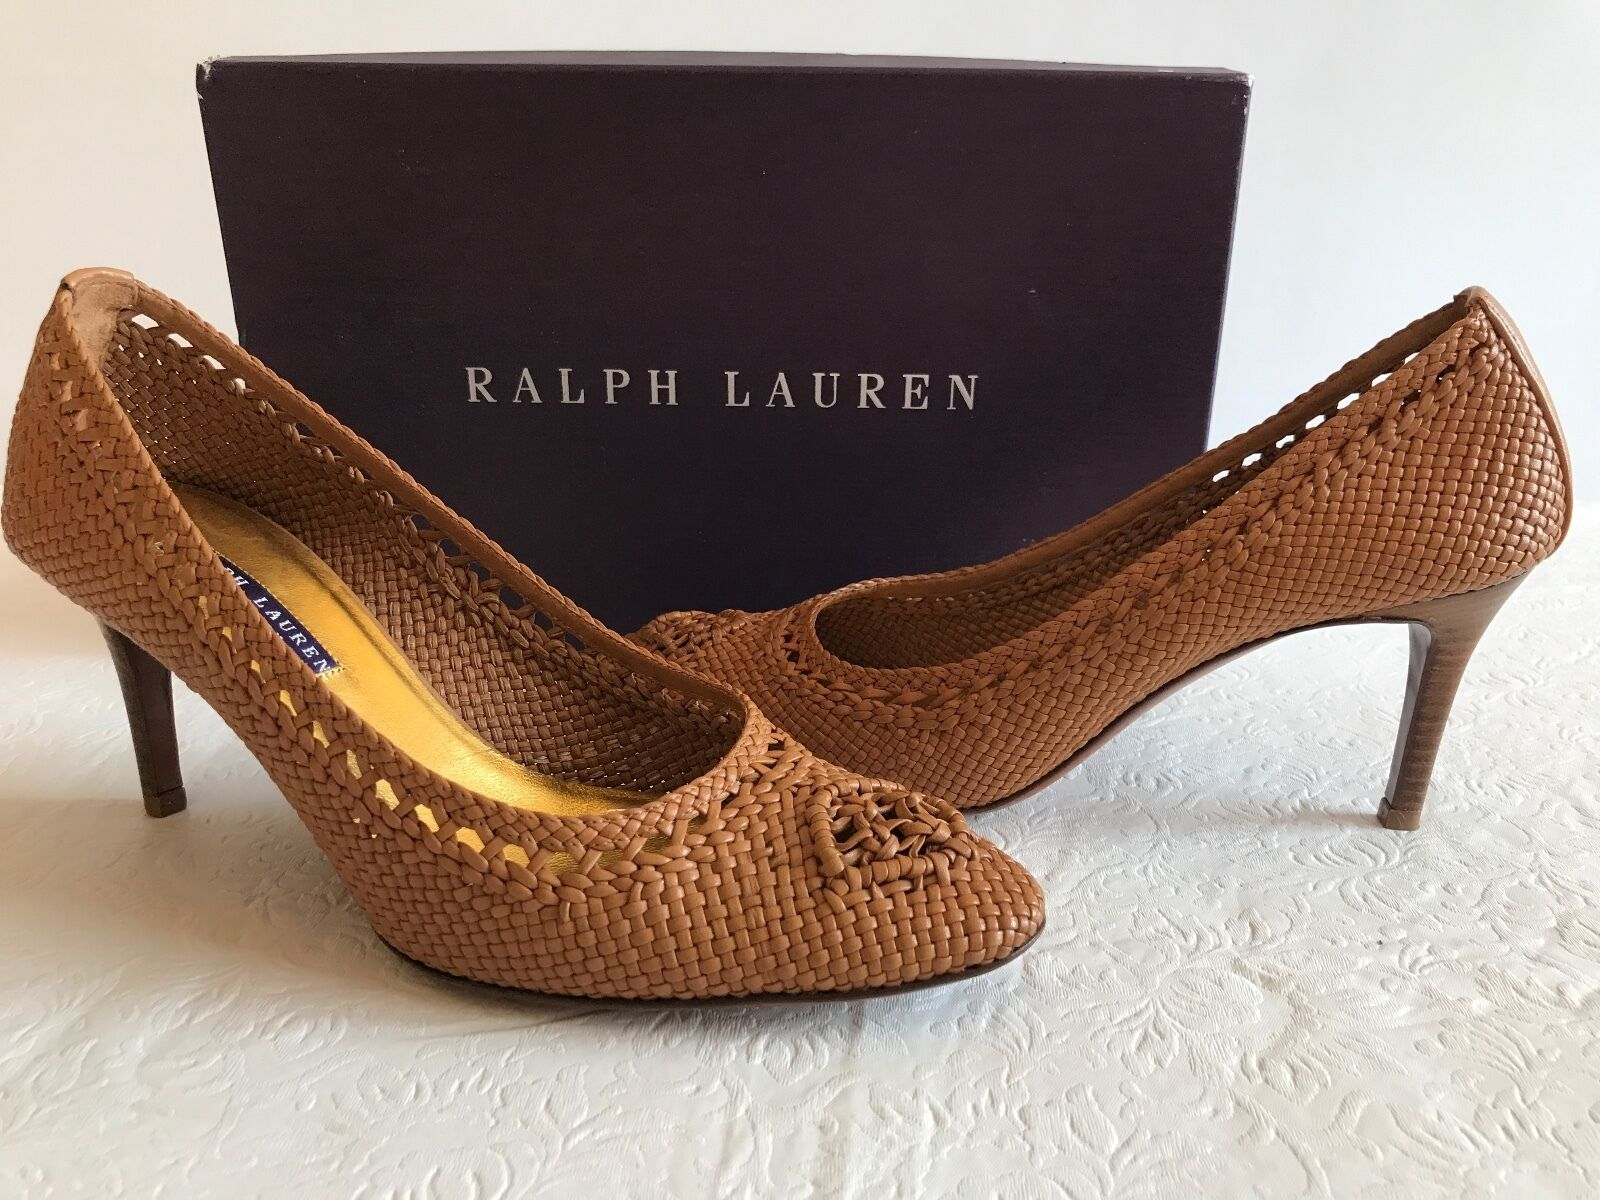 Ralph Lauren viola  Label Collection Leather PUMPS 8.5 B Made in  Polo Tan  prezzi equi